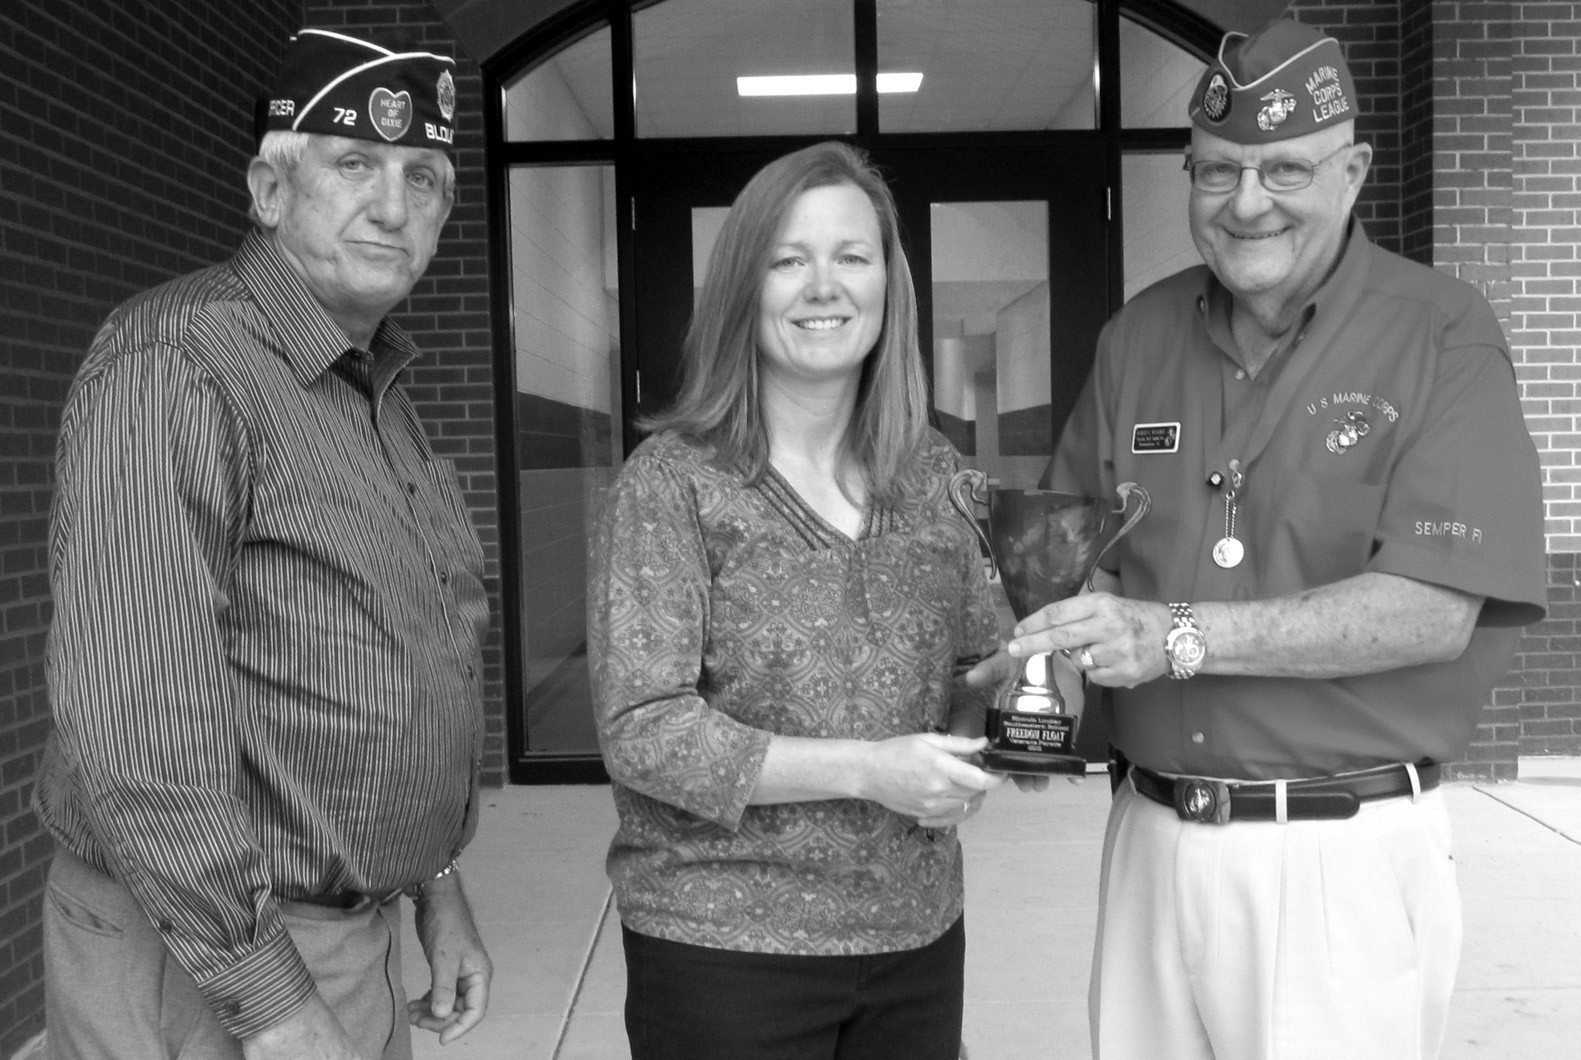 Rhonda Lindley (center), seventh-, eighth-, and ninth-grade science teacher at Southeastern School is presented the award for best float at the 2010 Veterans Day parade in Oneonta. Lindley and her students created a float showing an Apache helicopter for last year's event. (From left) Donnie Jackson, commander of American Legion Post 72, and Robert L. Venable, representing the Marine Corps League and Operation Grateful Heart, present the award. This year Lindley and her students will work on a float showing the Navy emblem, featuring an anchor, gun, eagle, Neptune's trident, and silhouettes of a battleship and submarine. The float is dedicated to Charles Weldon, Southeastern custodian, now retired from the U.S. Navy. The Veterans Day Parade is this Saturday, Nov. 5, at 10 a.m. Can't wait. – Ron Gholson